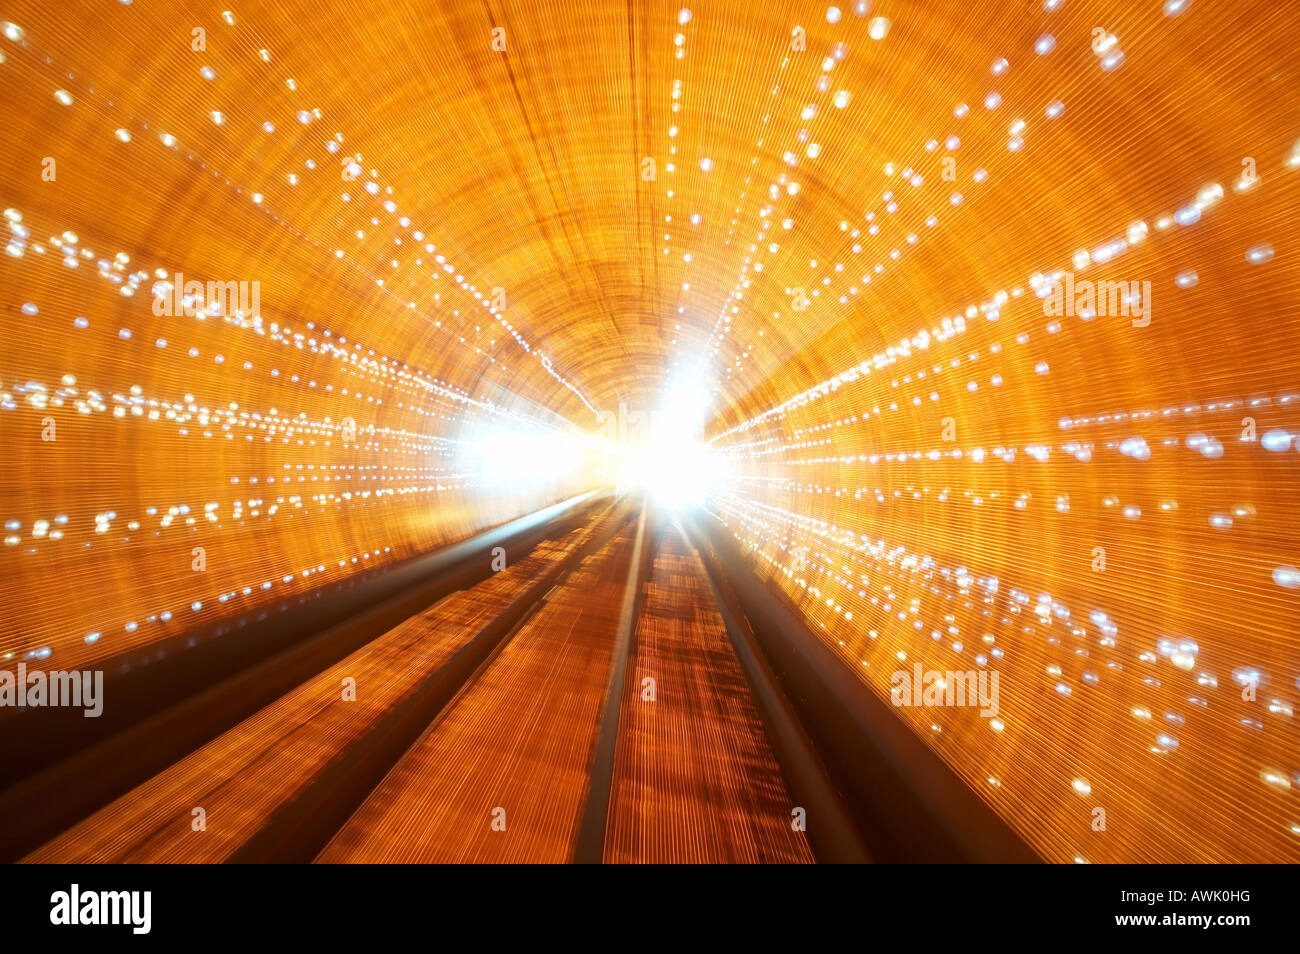 The colourful Bund Sightseeing Tunnel train under the Huang Pu River connecting Puxi and Pudong districts in Shanghai - Stock Image